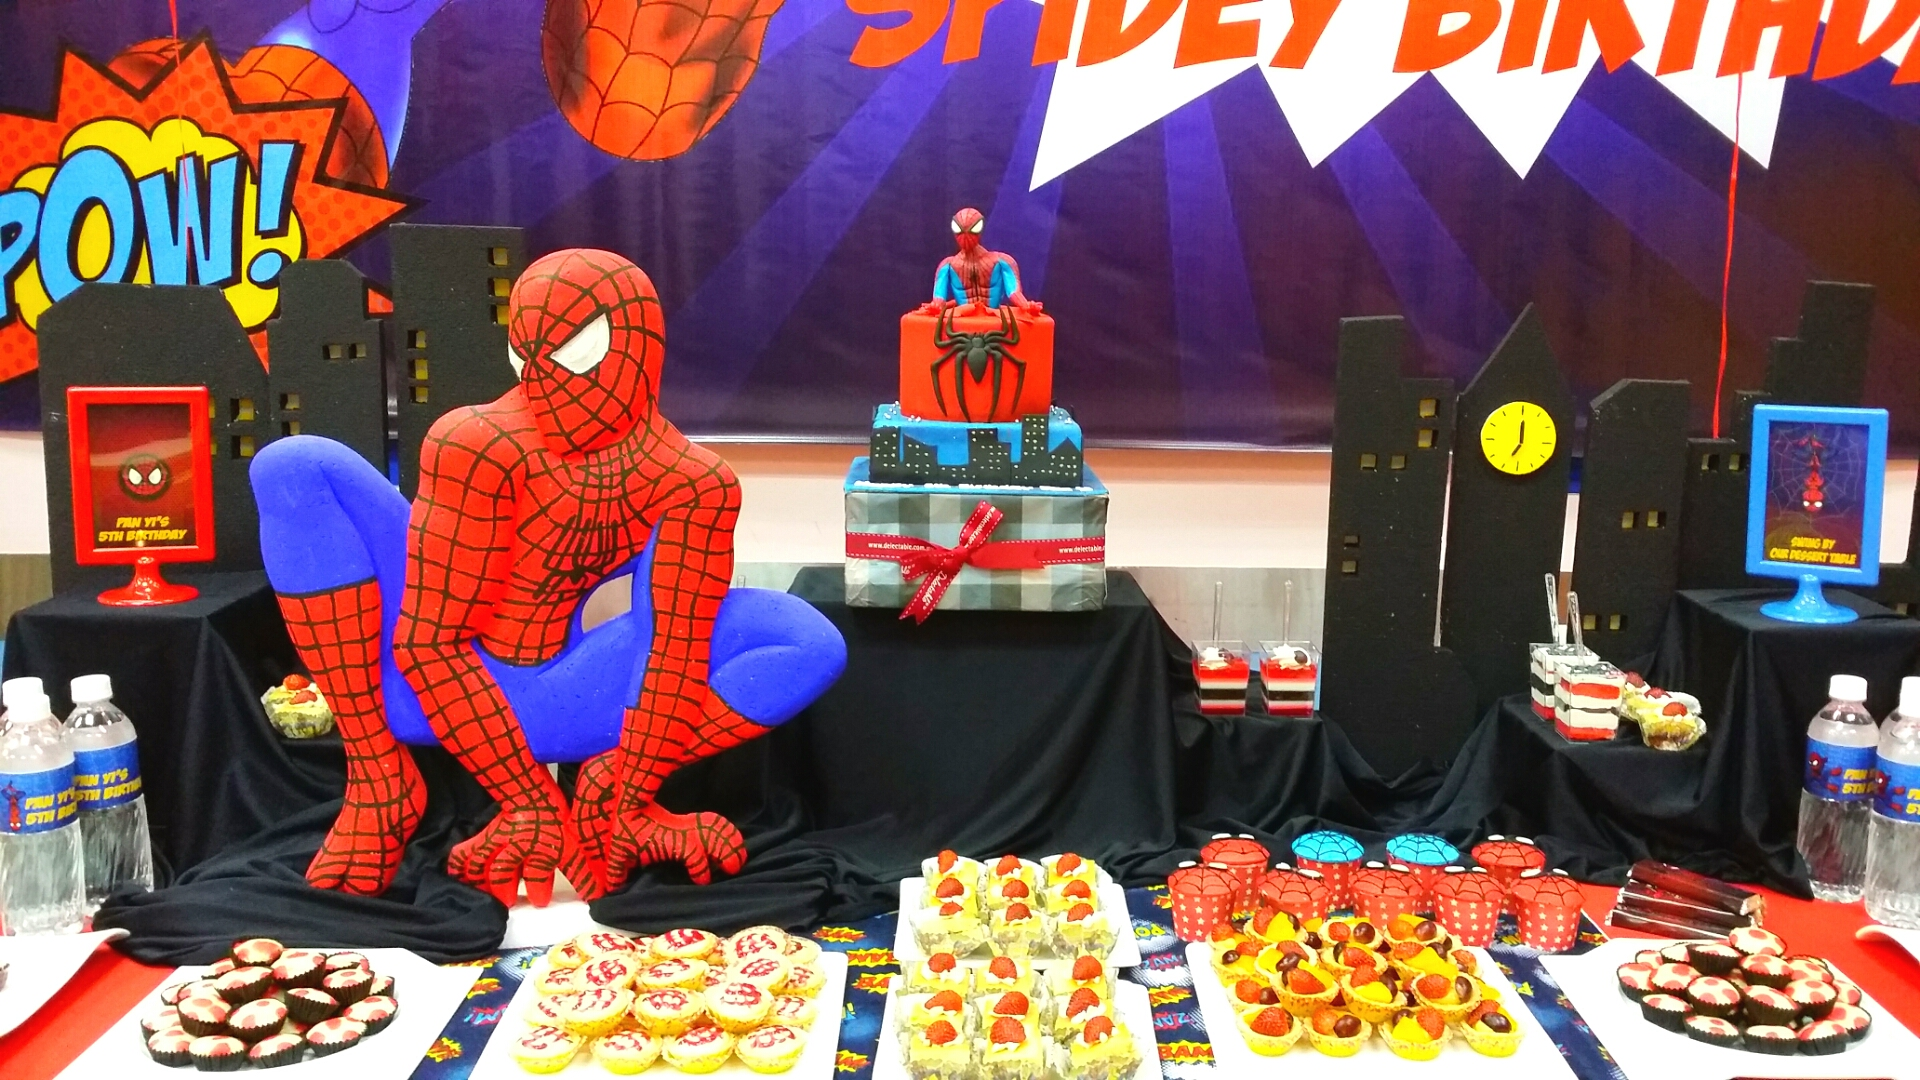 spiderman birthday wallpaper ; wpid-2014-08-17-11-14-49-jpg